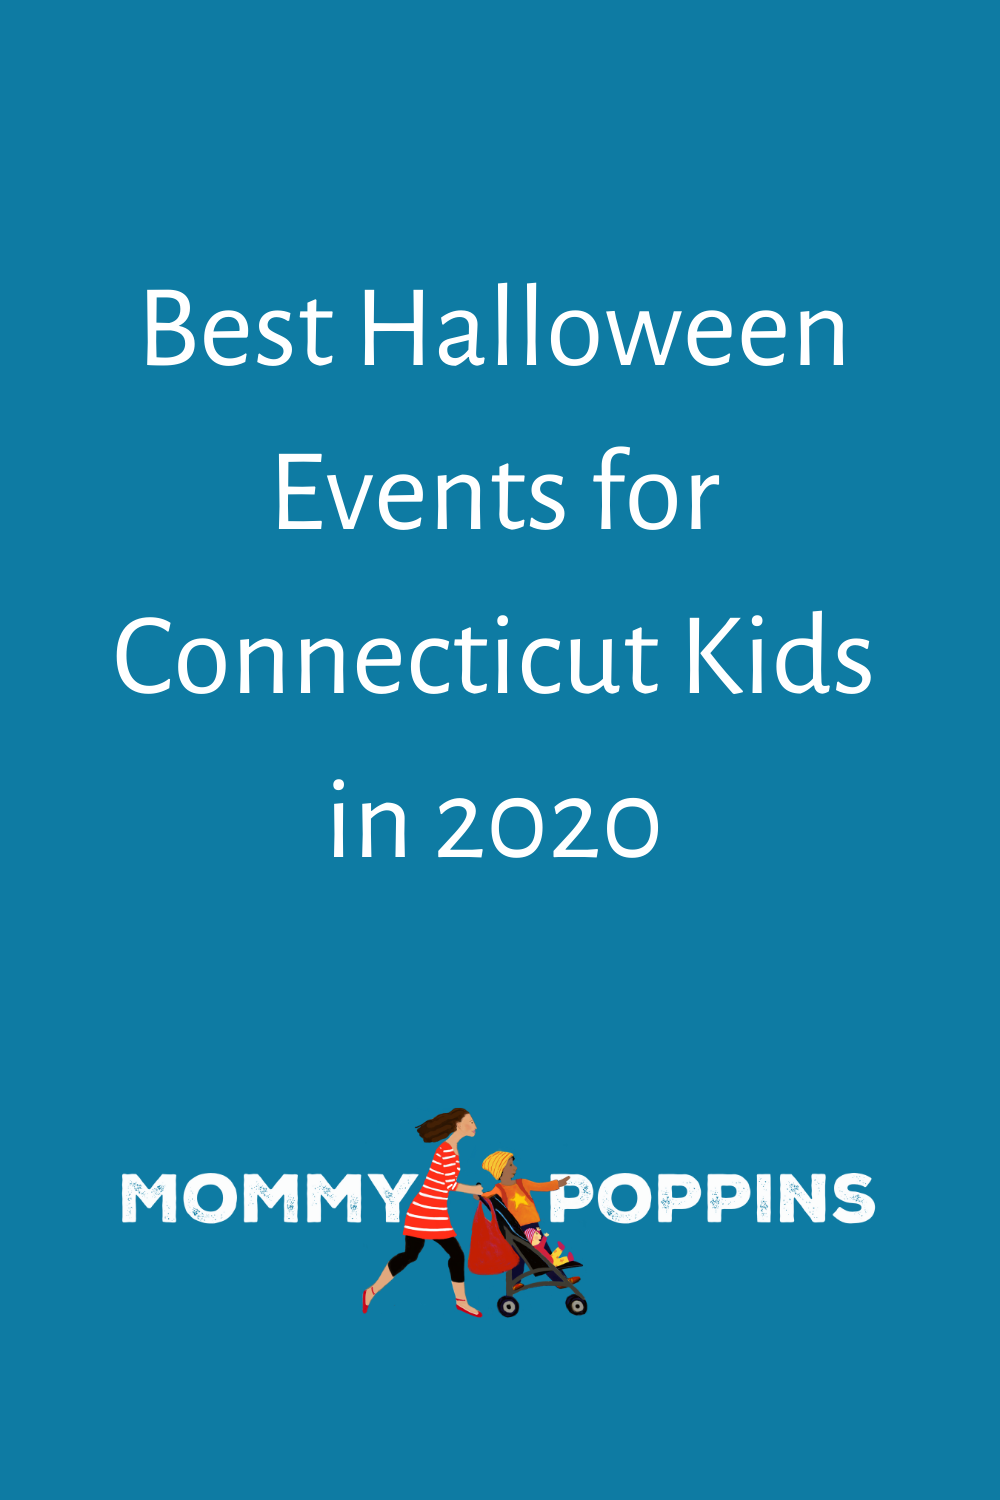 Christmas Activities In Connecticut 2020 Best Halloween Events for Connecticut Kids in 2020 | Mommy Poppins